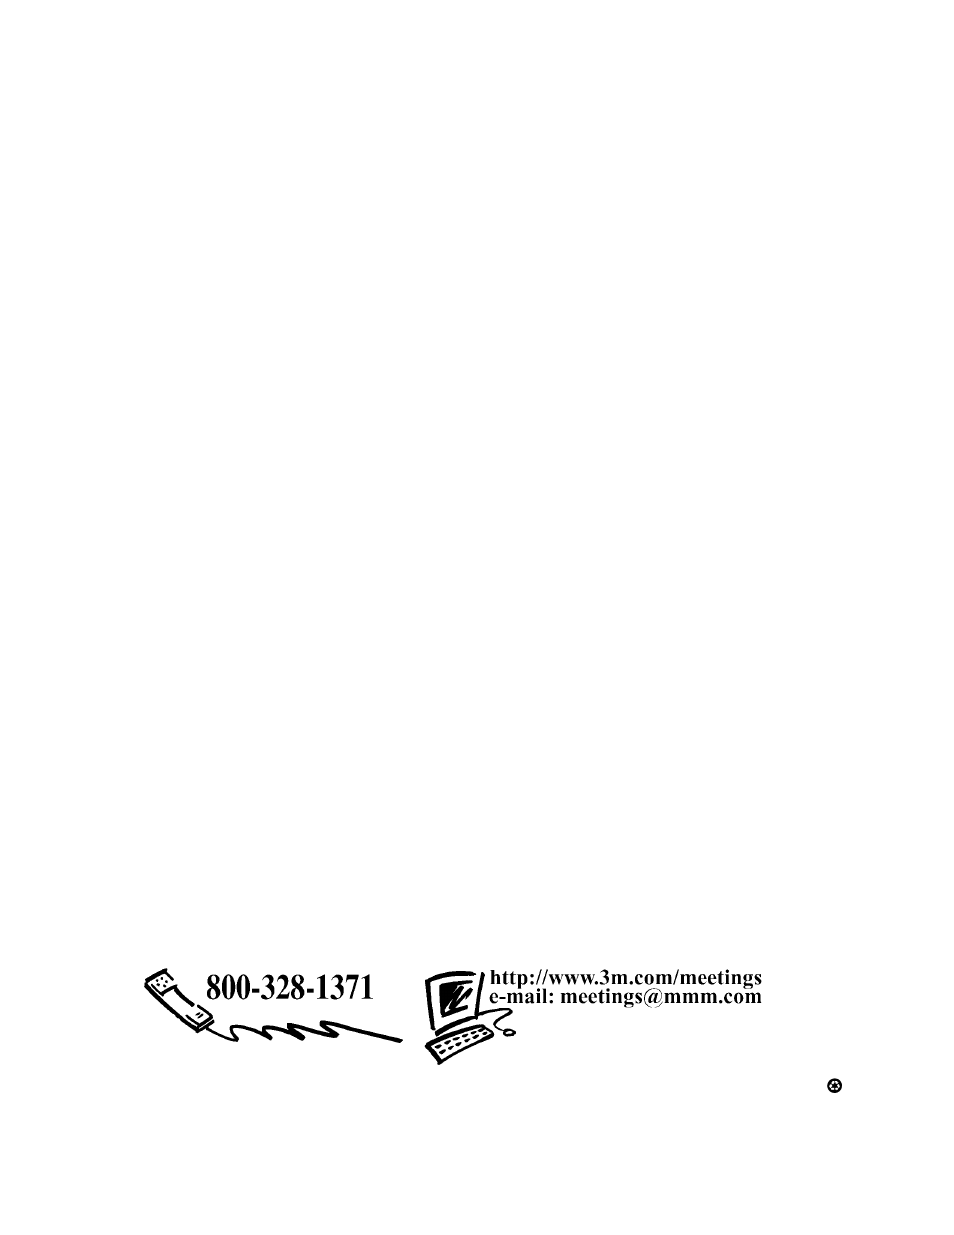 3M MP8725 User Manual | Page 33 / 33